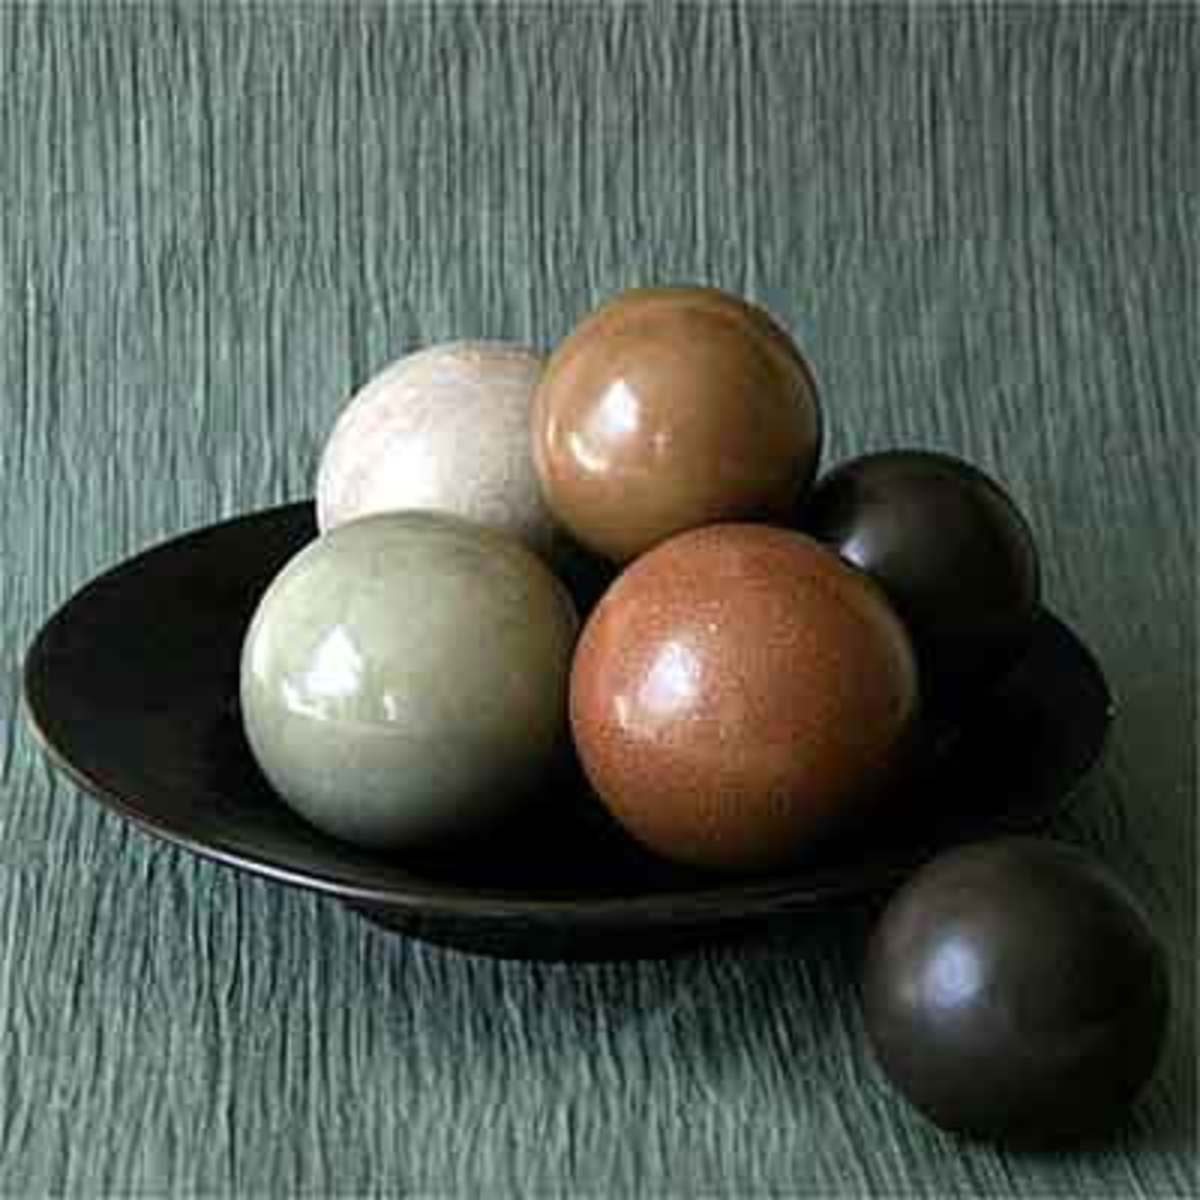 The color of the finished dirt balls comes from the color of the dust or clay used to coat the outside layers of the tightly-compressed ball of mud.